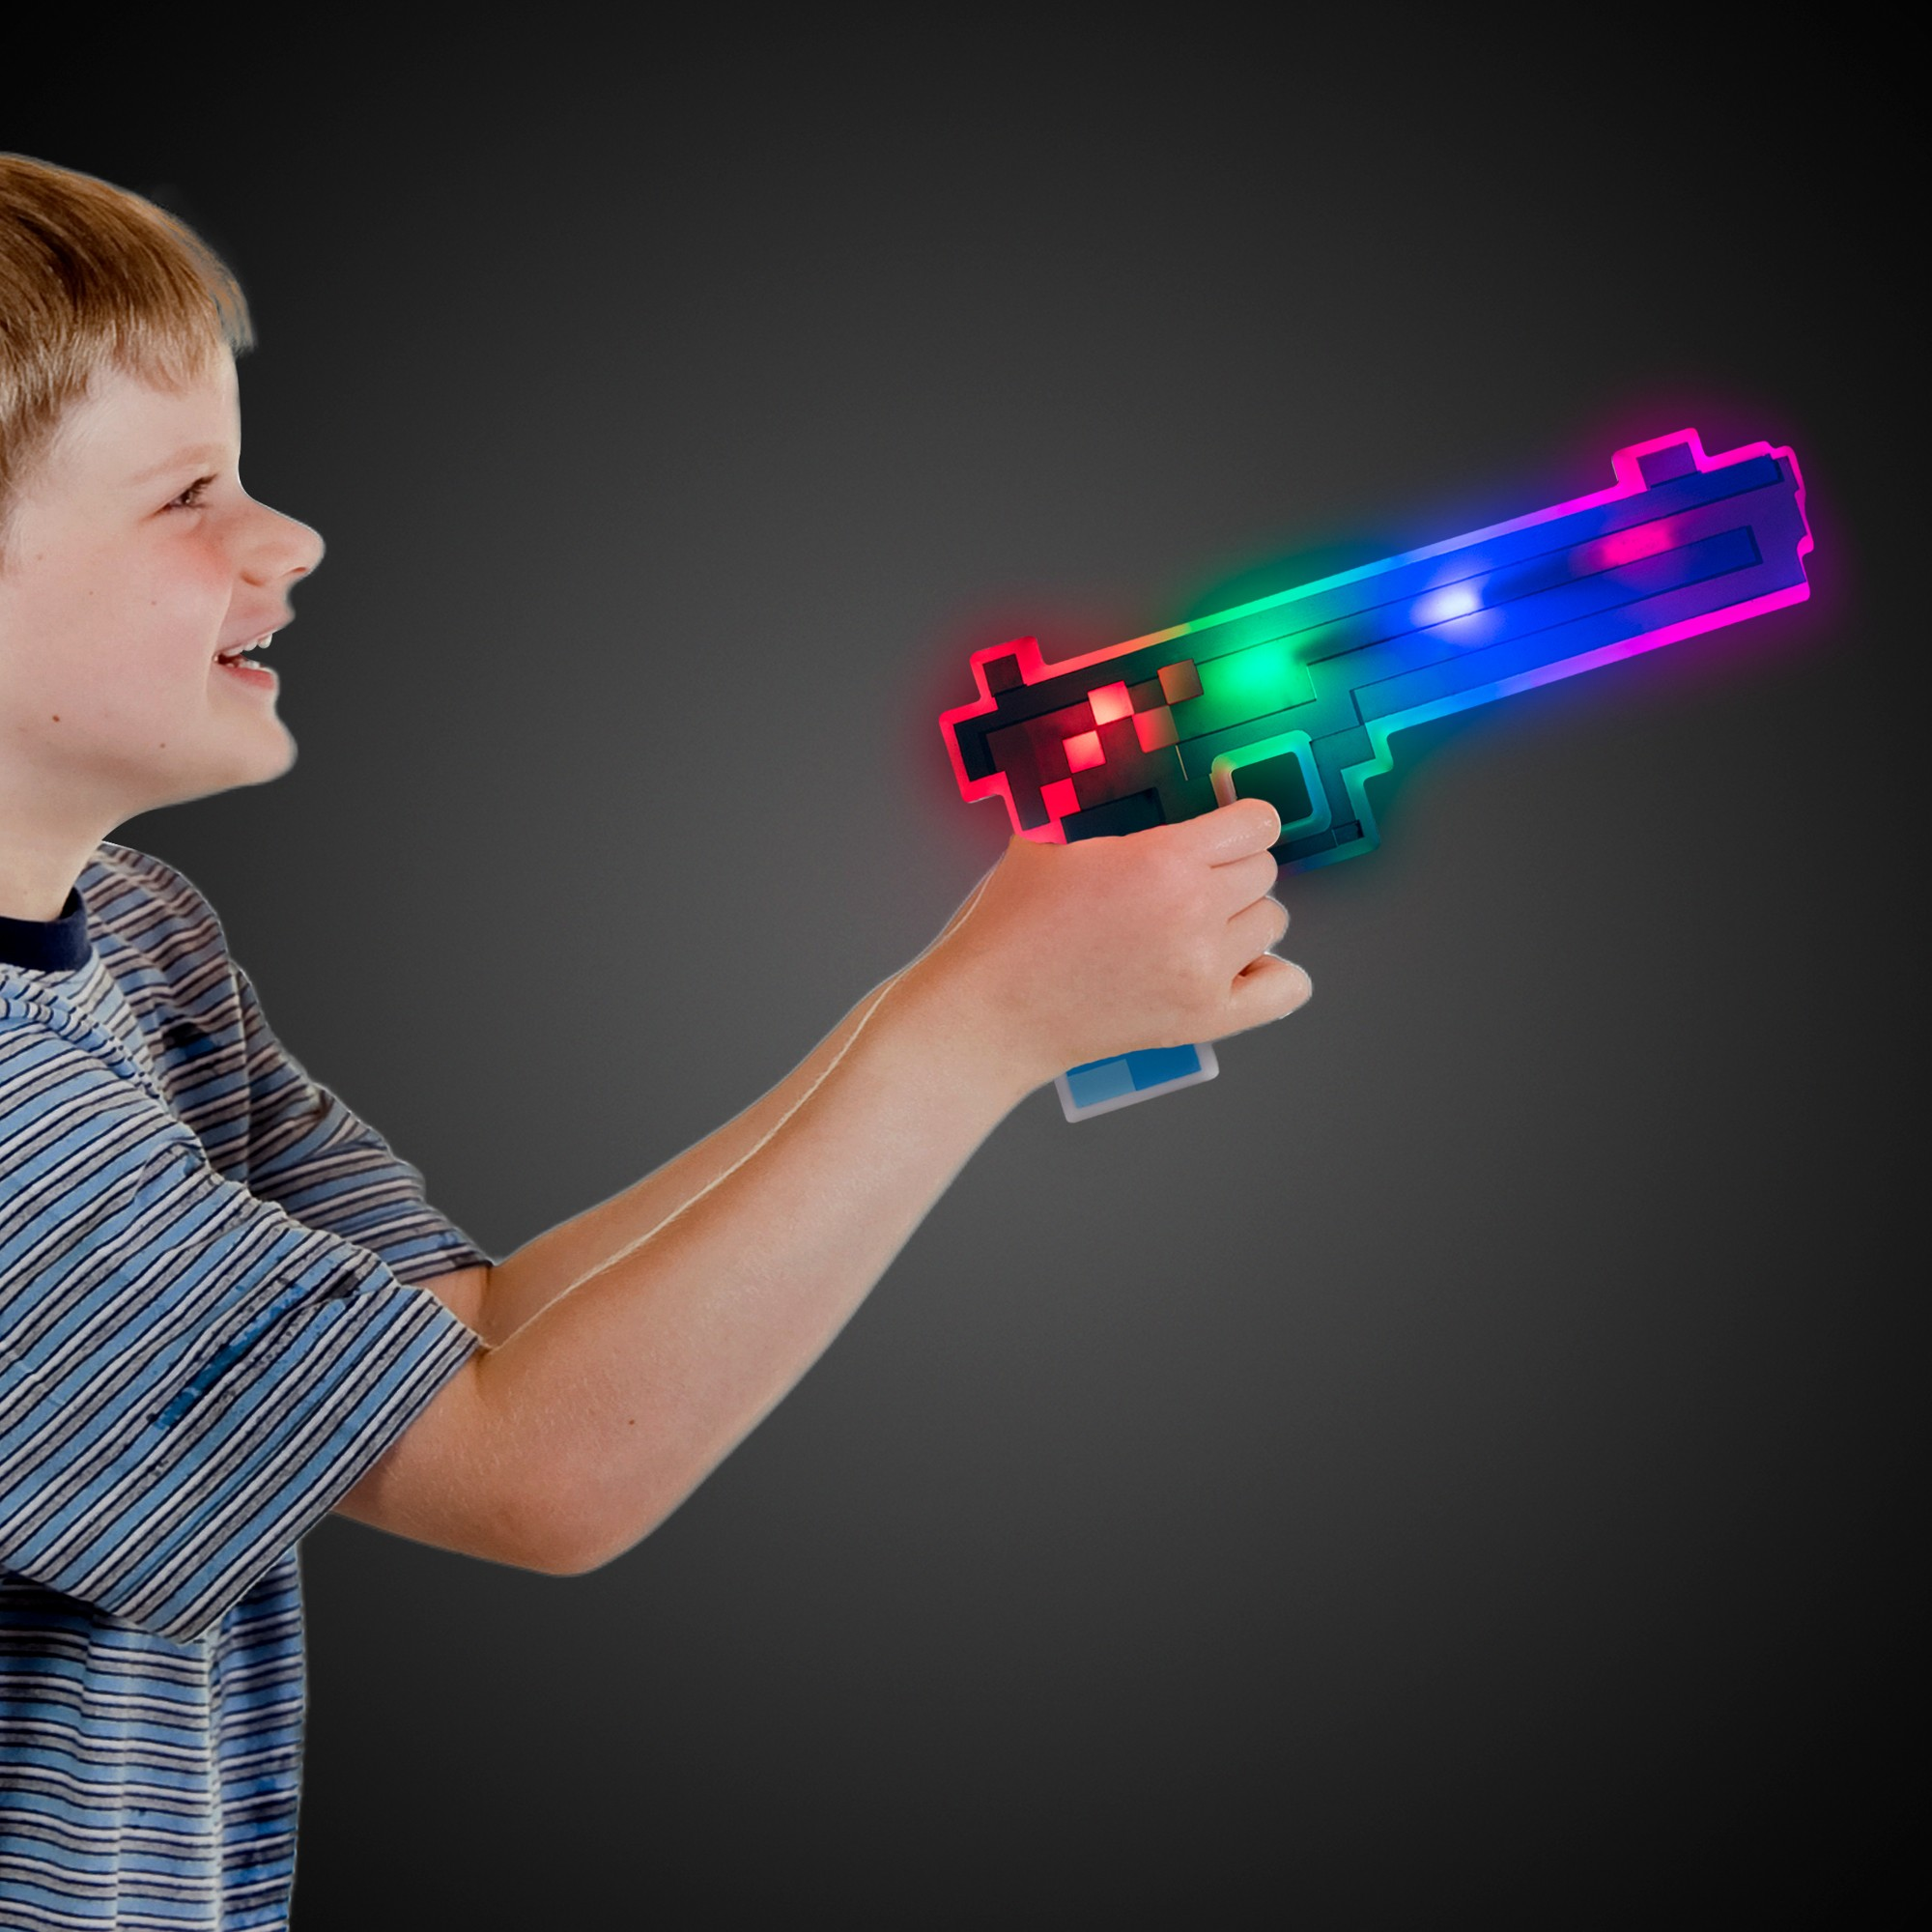 Blue/White LED Pixel Gun